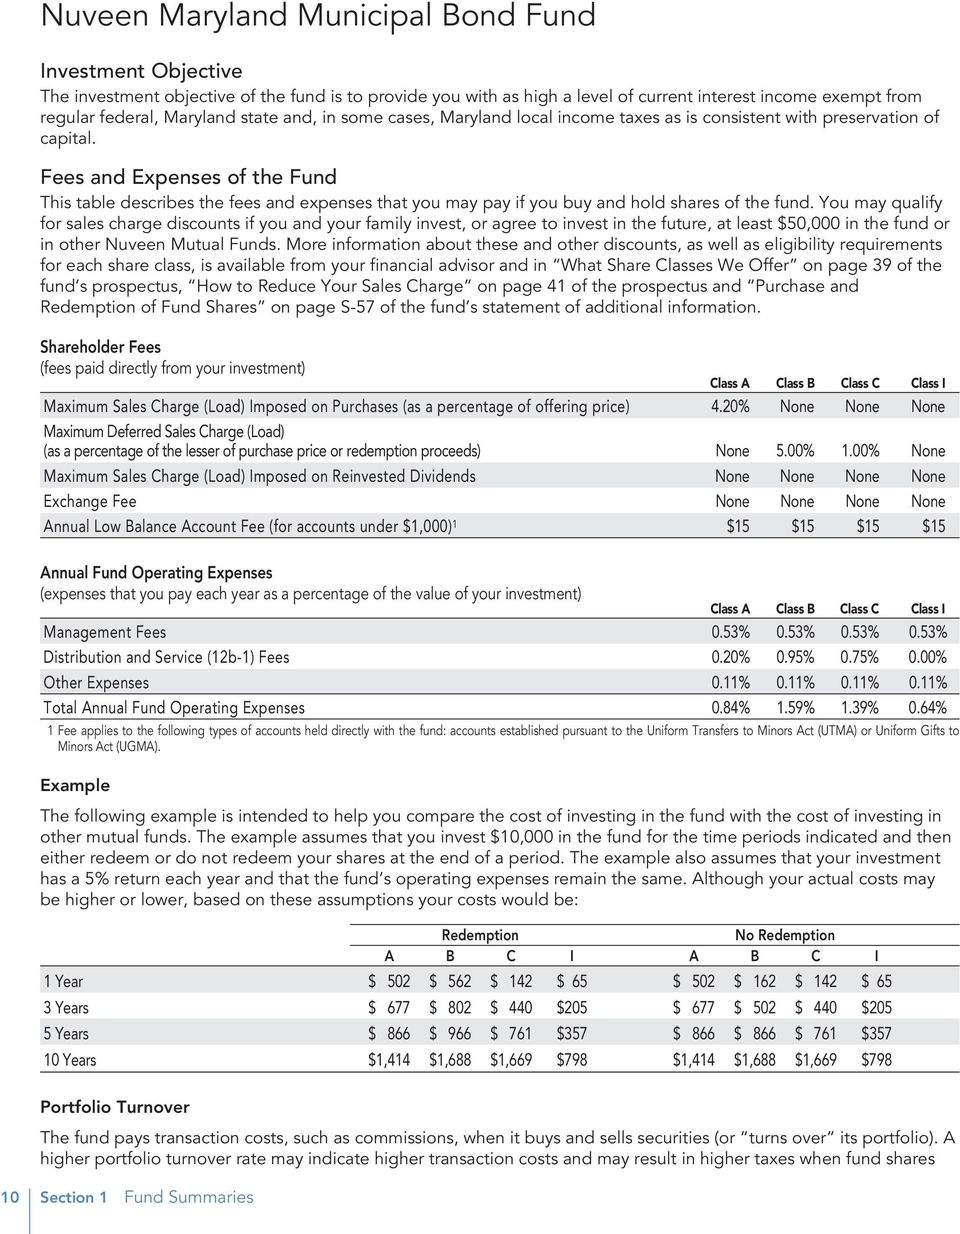 Fees and Expenses of the Fund This table describes the fees and expenses that you may pay if you buy and hold shares of the fund.